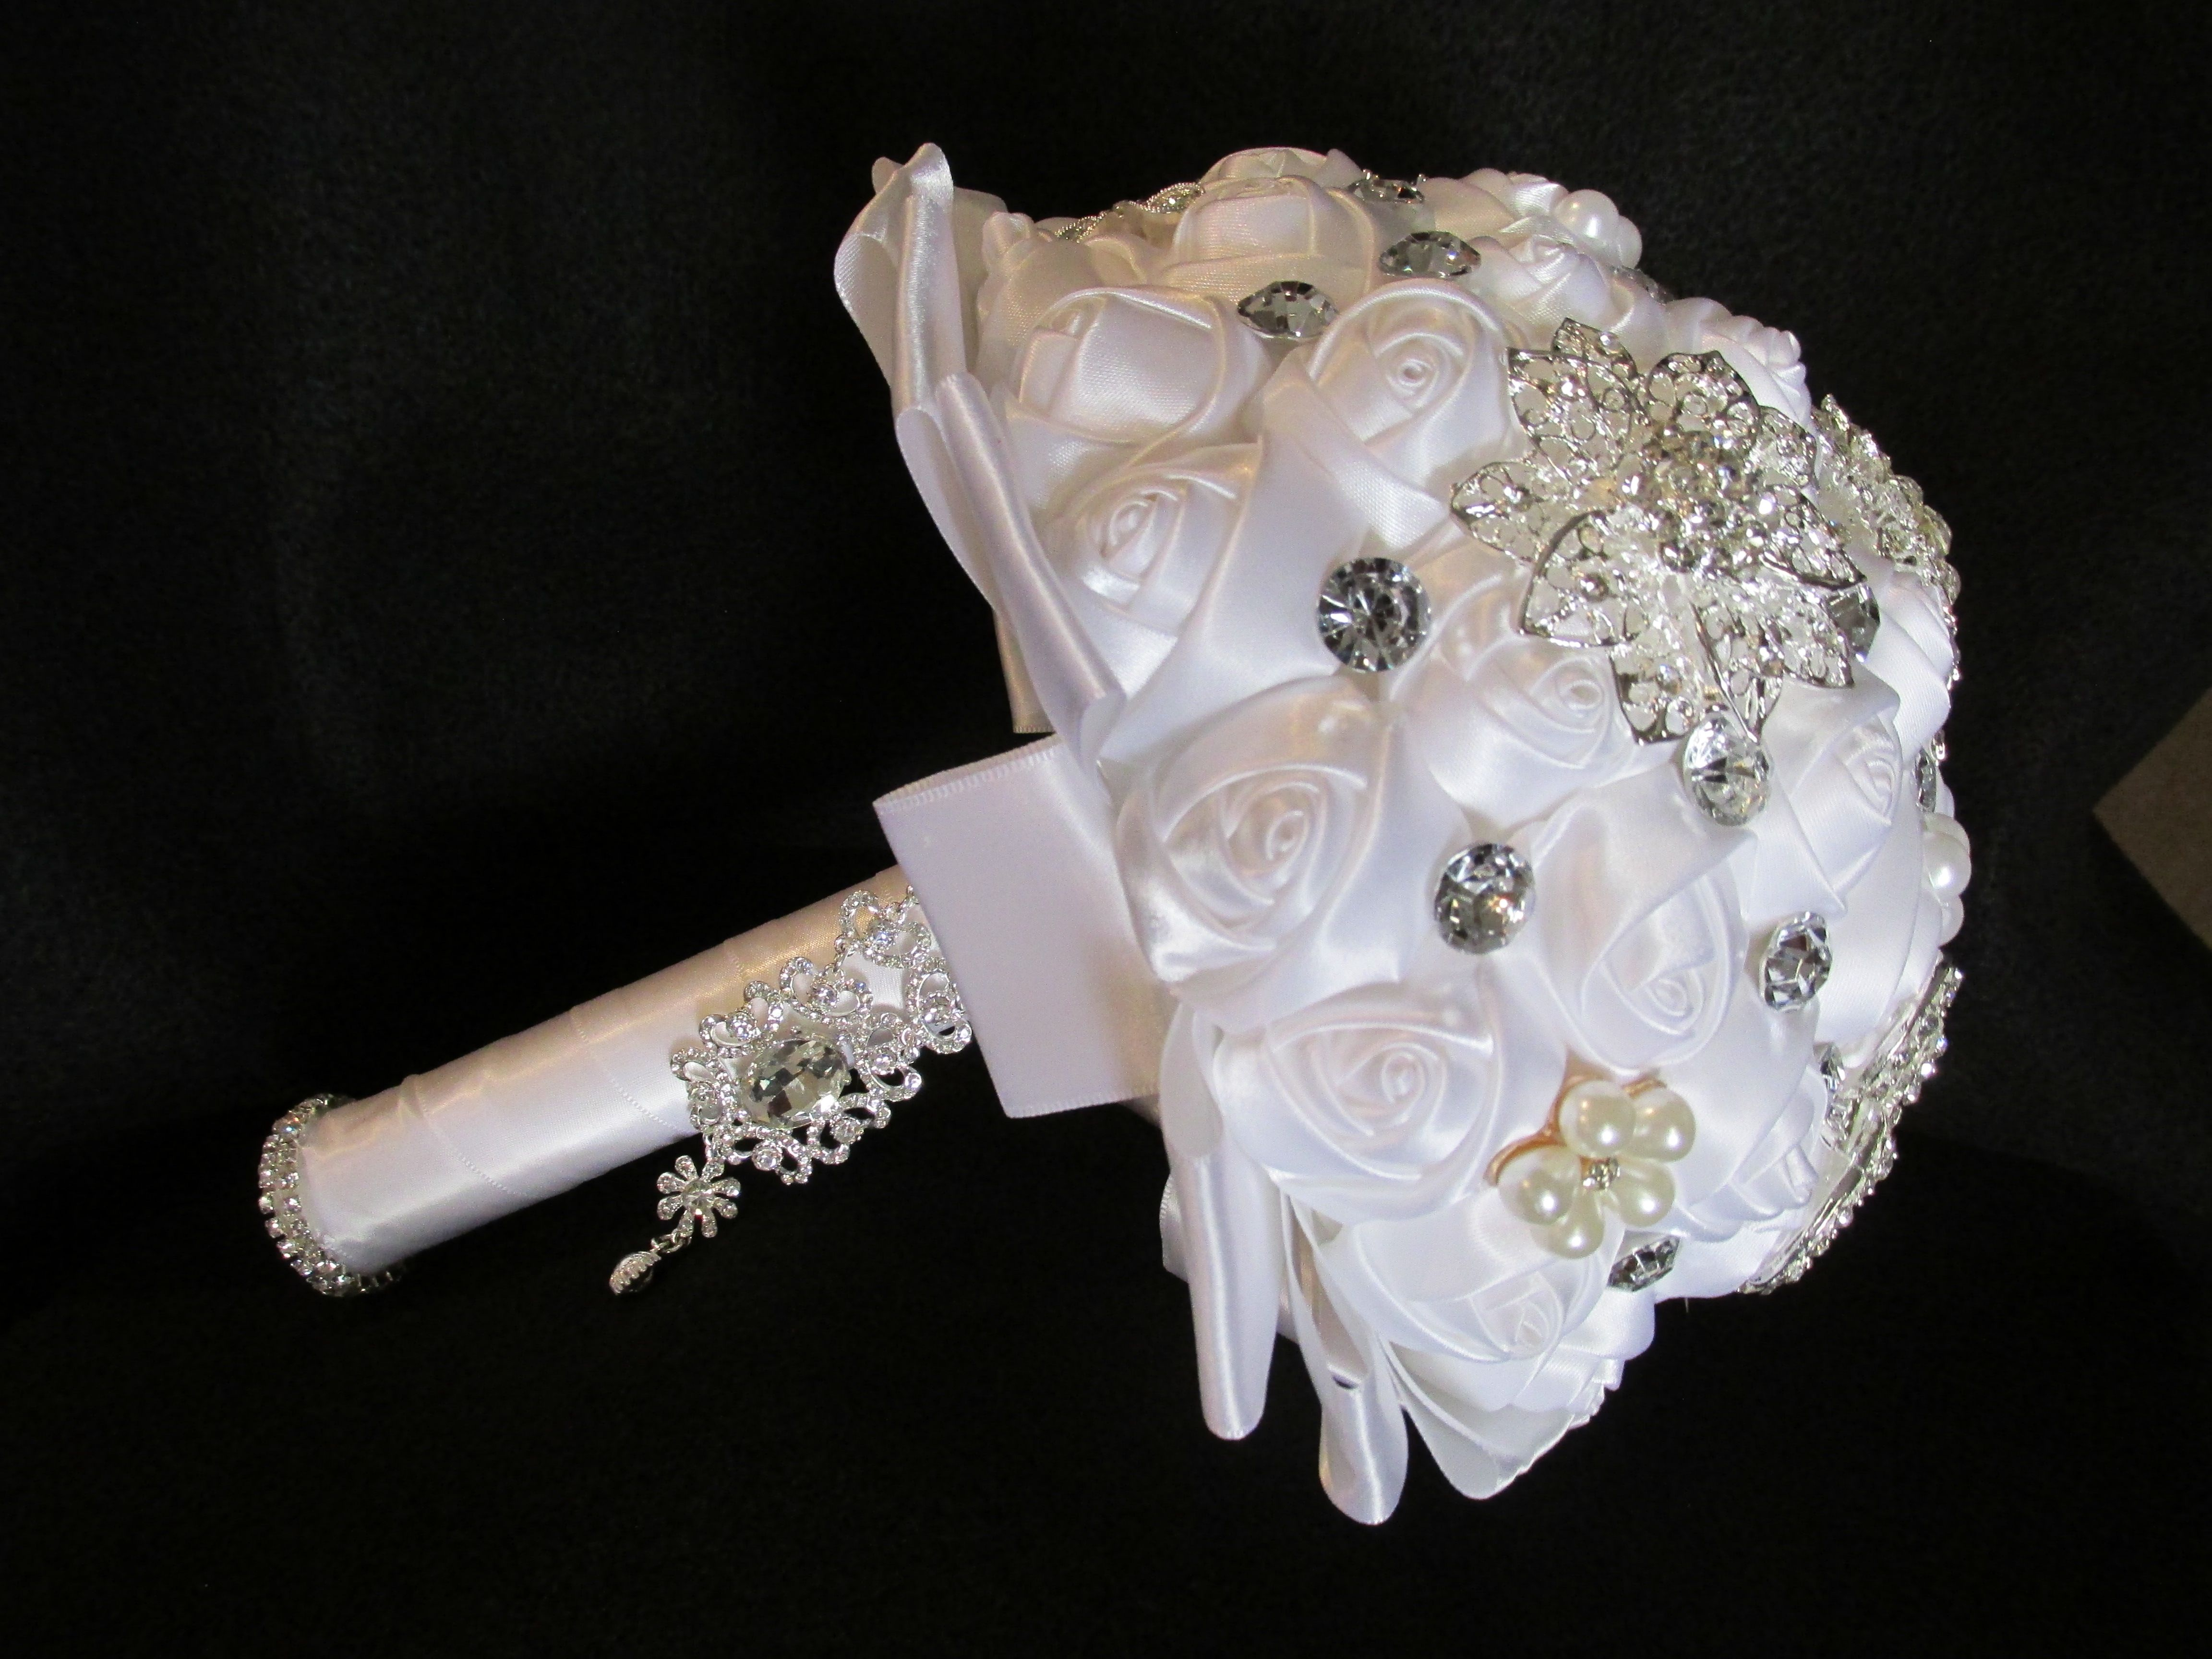 This beautiful brooch bouquet will compliment any color dress the bride may choose. Also great for bridesmaids.